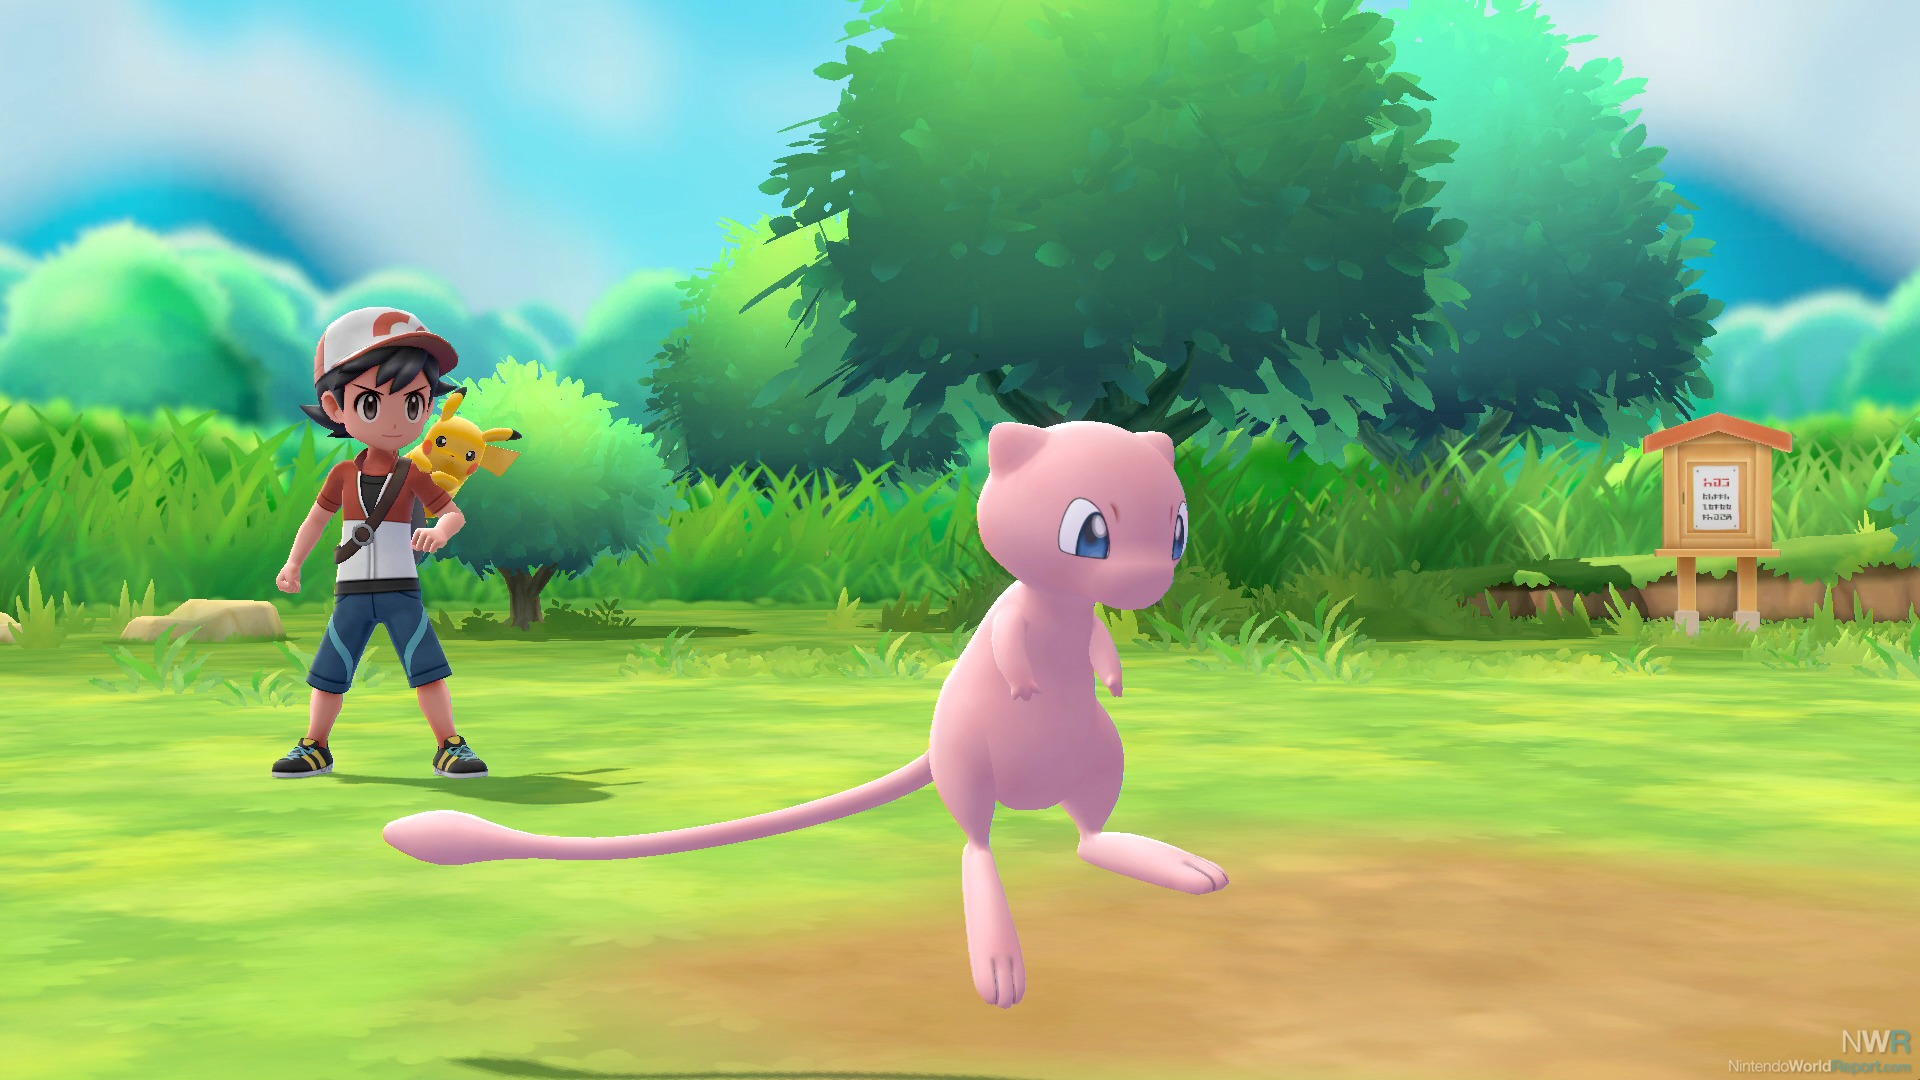 Mew included with PokeBall Plus for Pokemon: Let's Go, Pikachu and Eevee